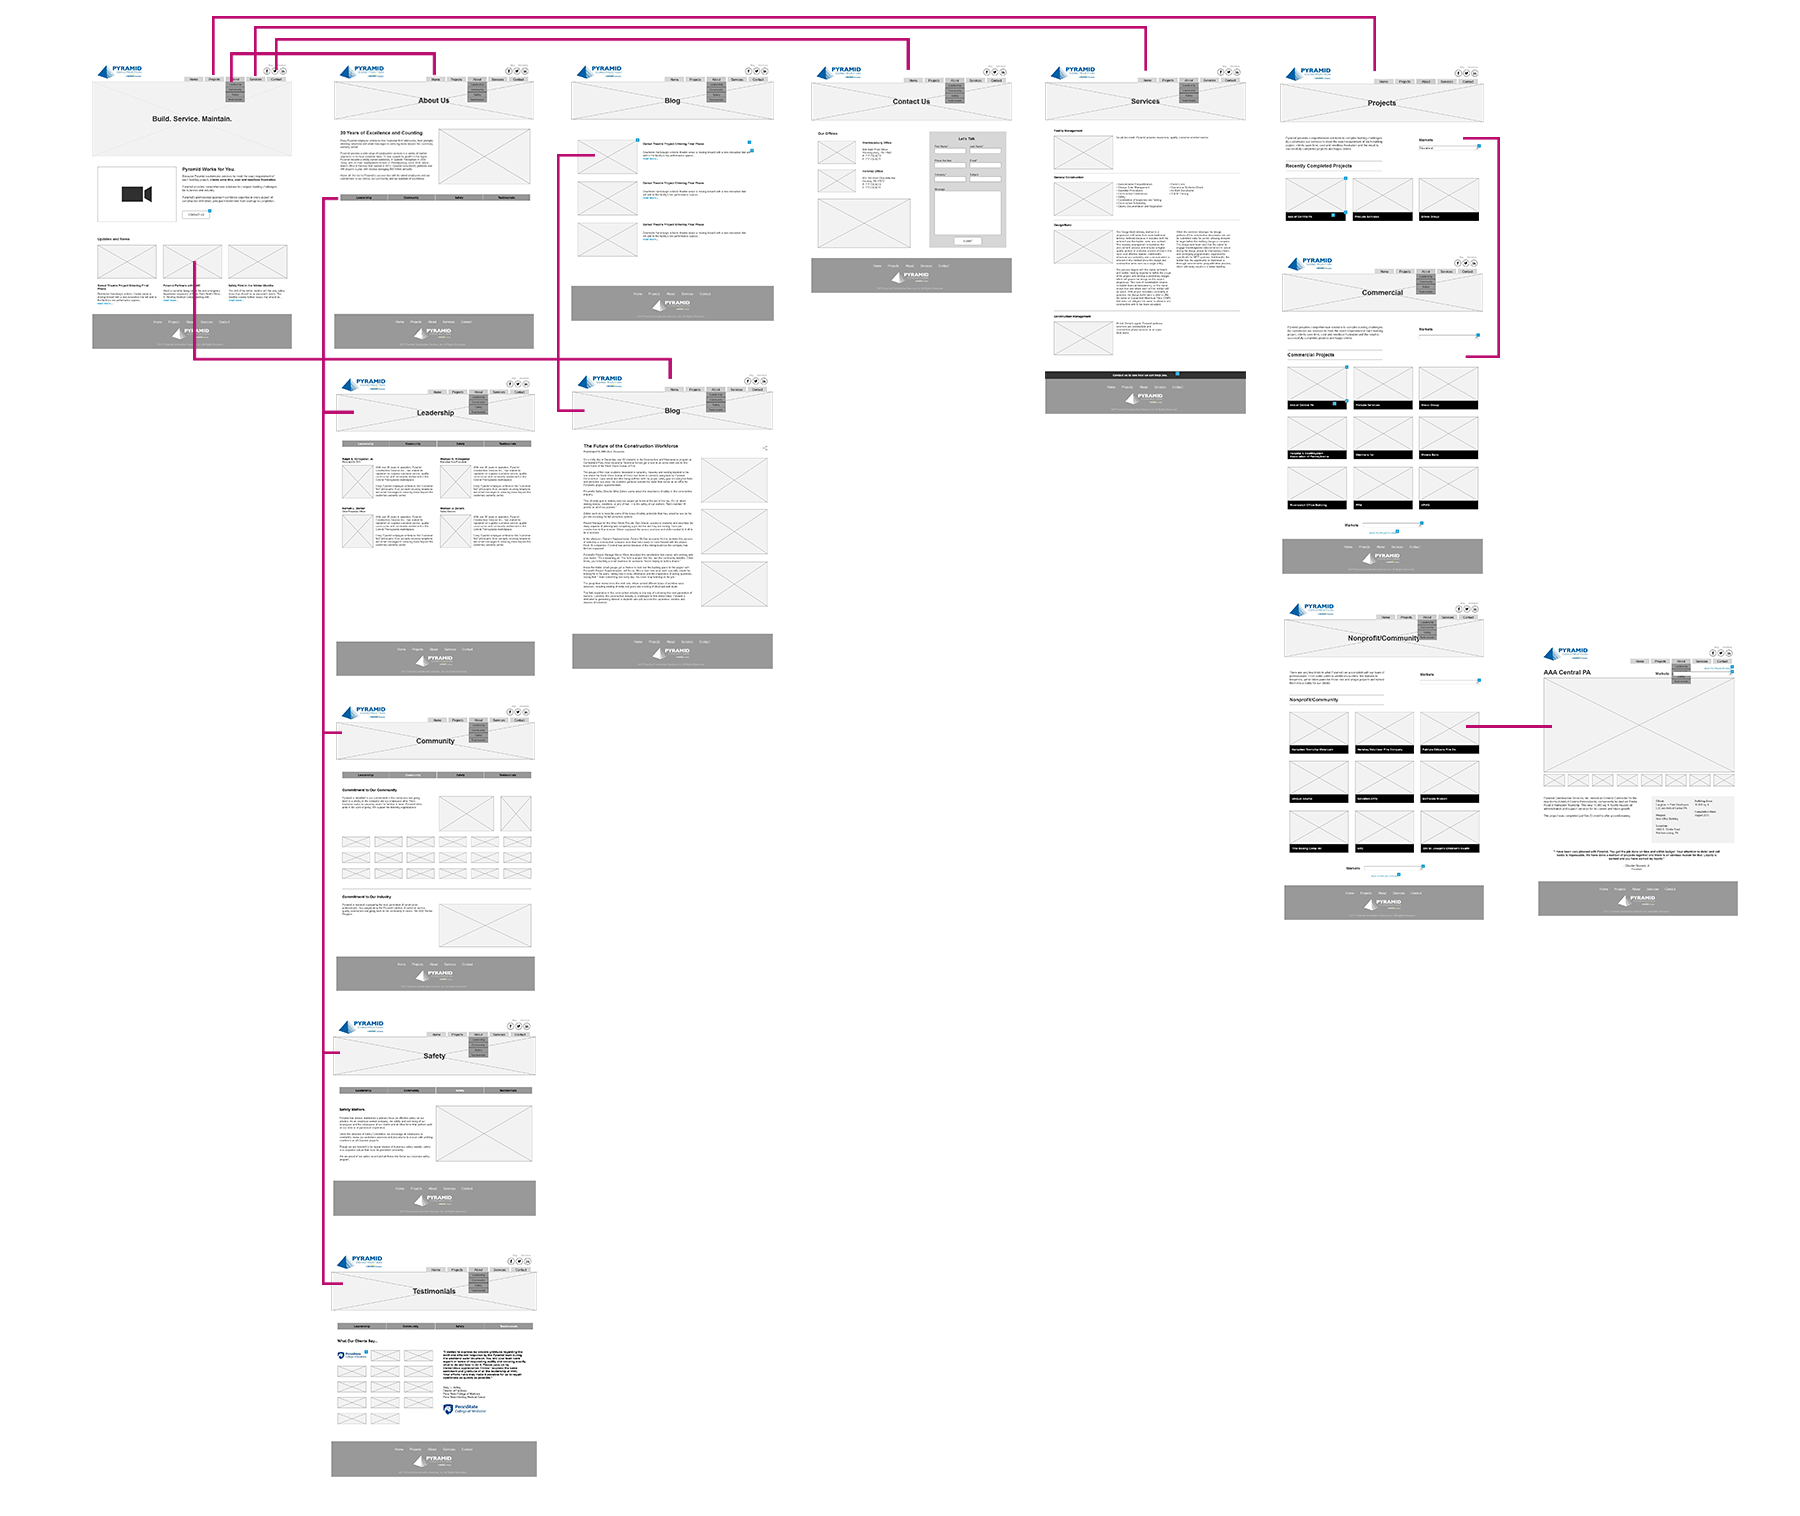 Wireframes - Created in Axure XP, the wireframes were functional and able to be tested to ensure easy navigation.